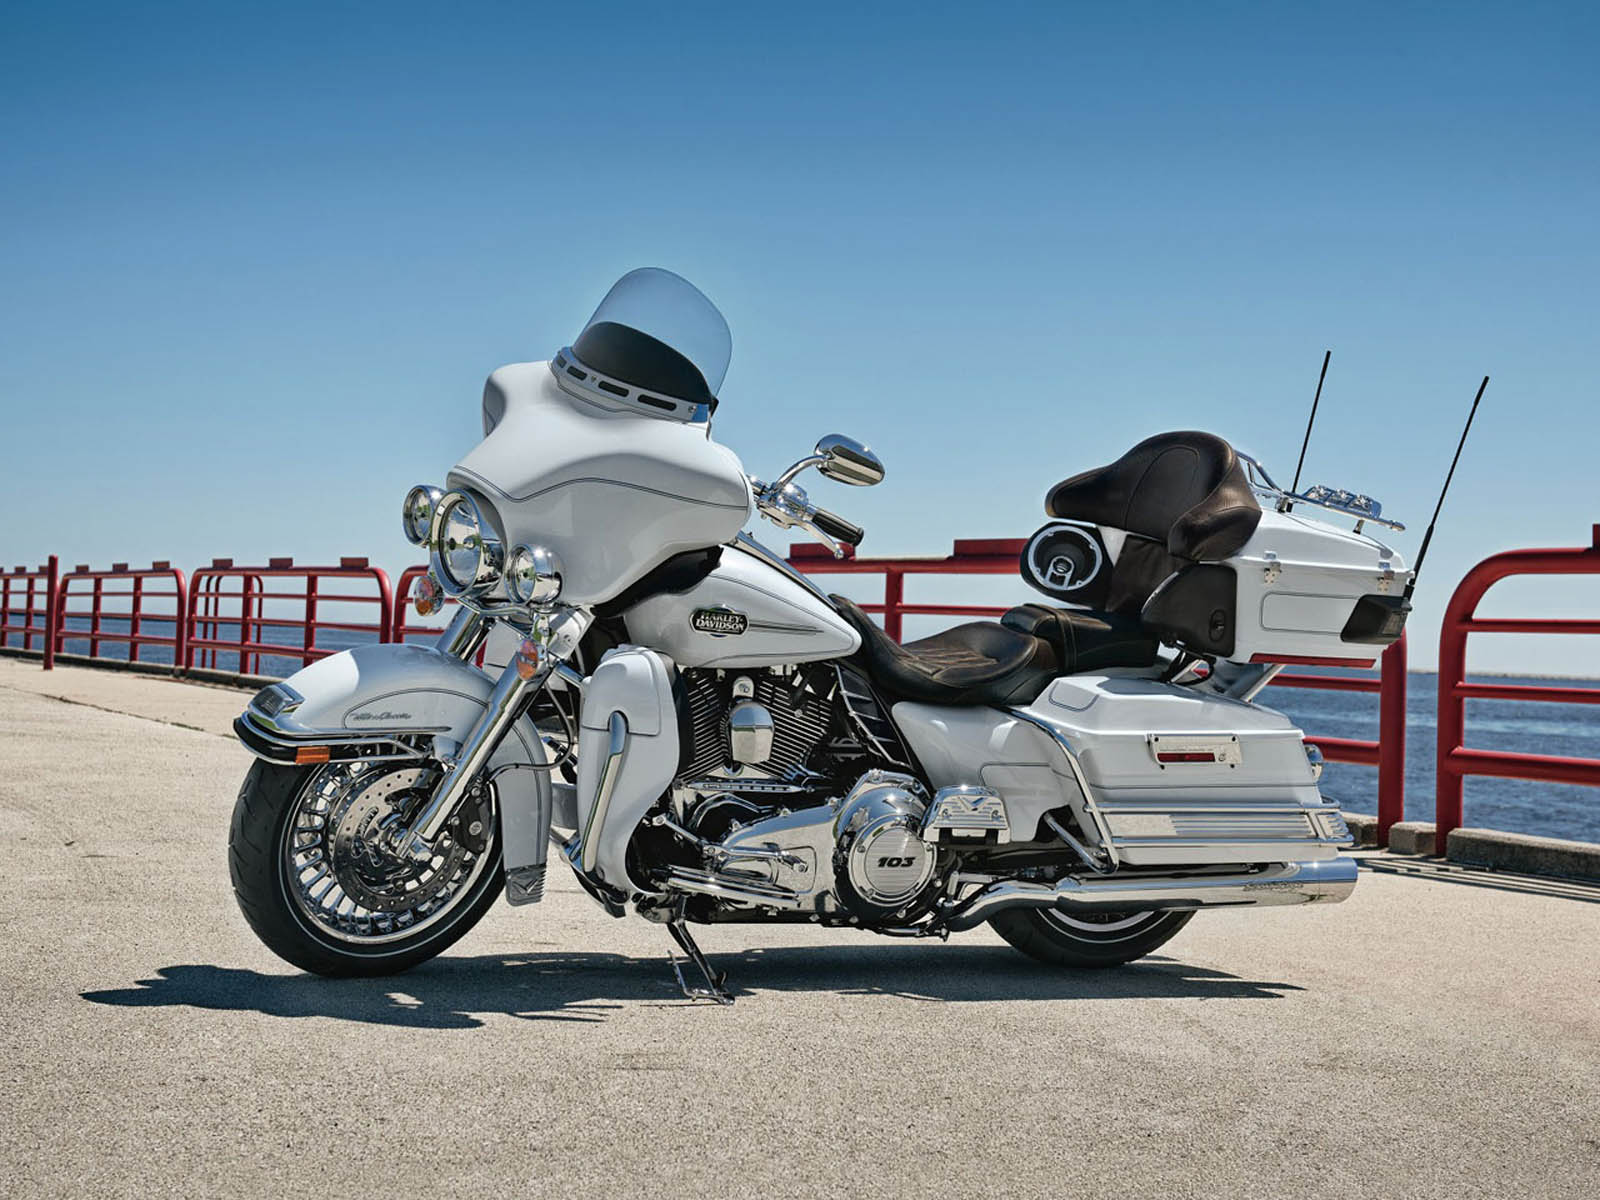 Wallpapers harley davidson ultra classic electra glide flhtcu bike harley davidson ultra classic electra glide flhtcu bike wallpapers voltagebd Images